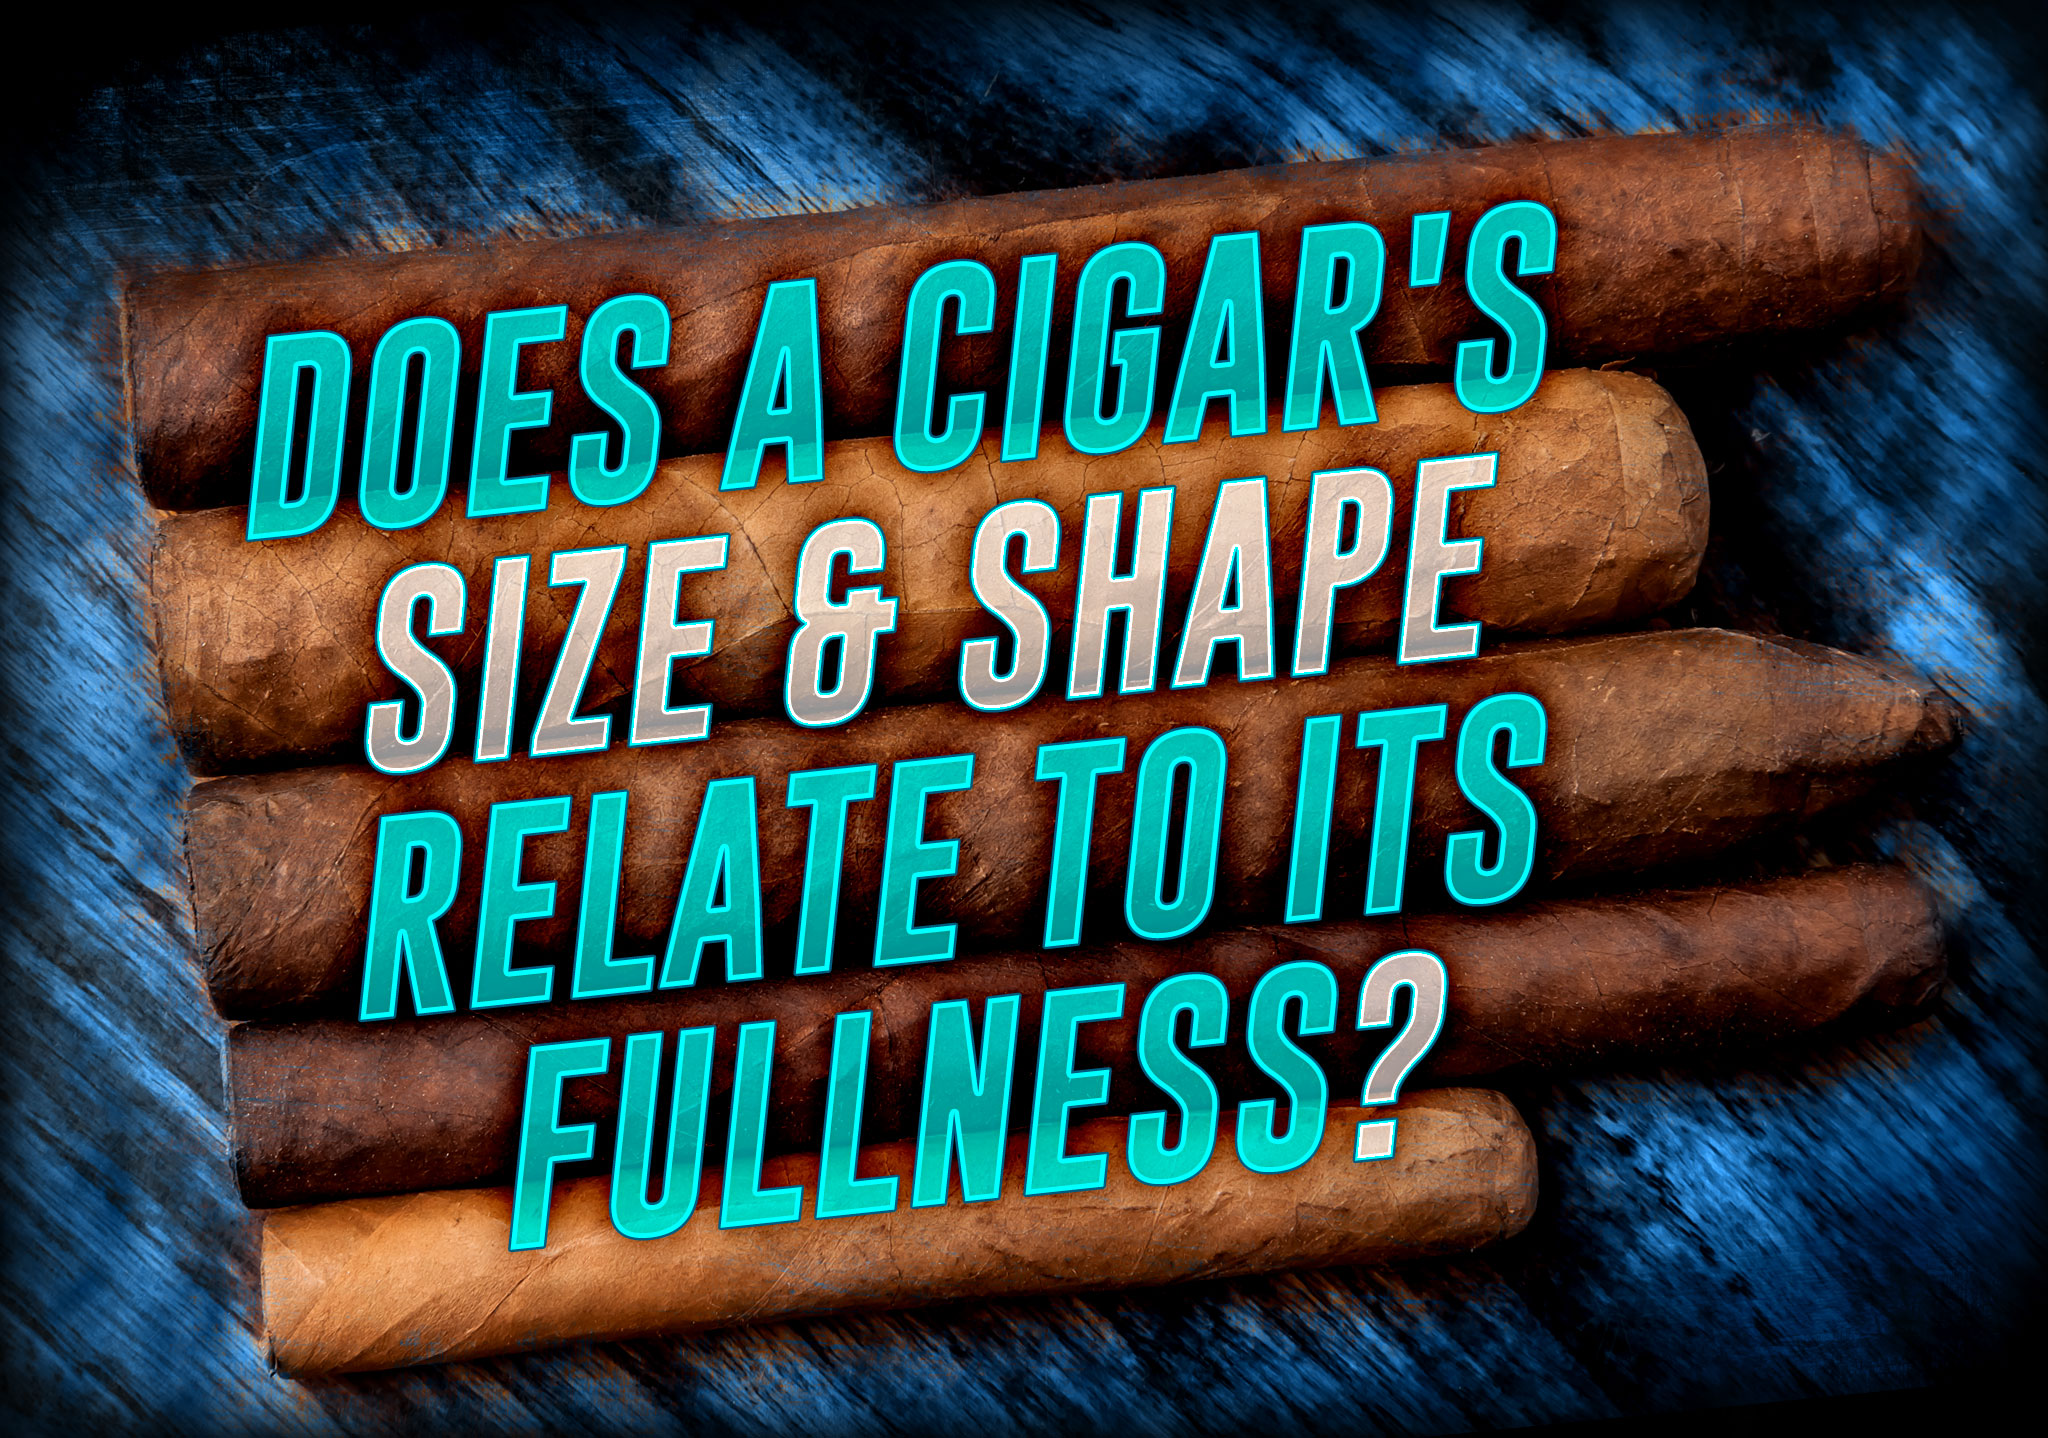 Does a Cigar's Size & Shape Relate to its Fullness?